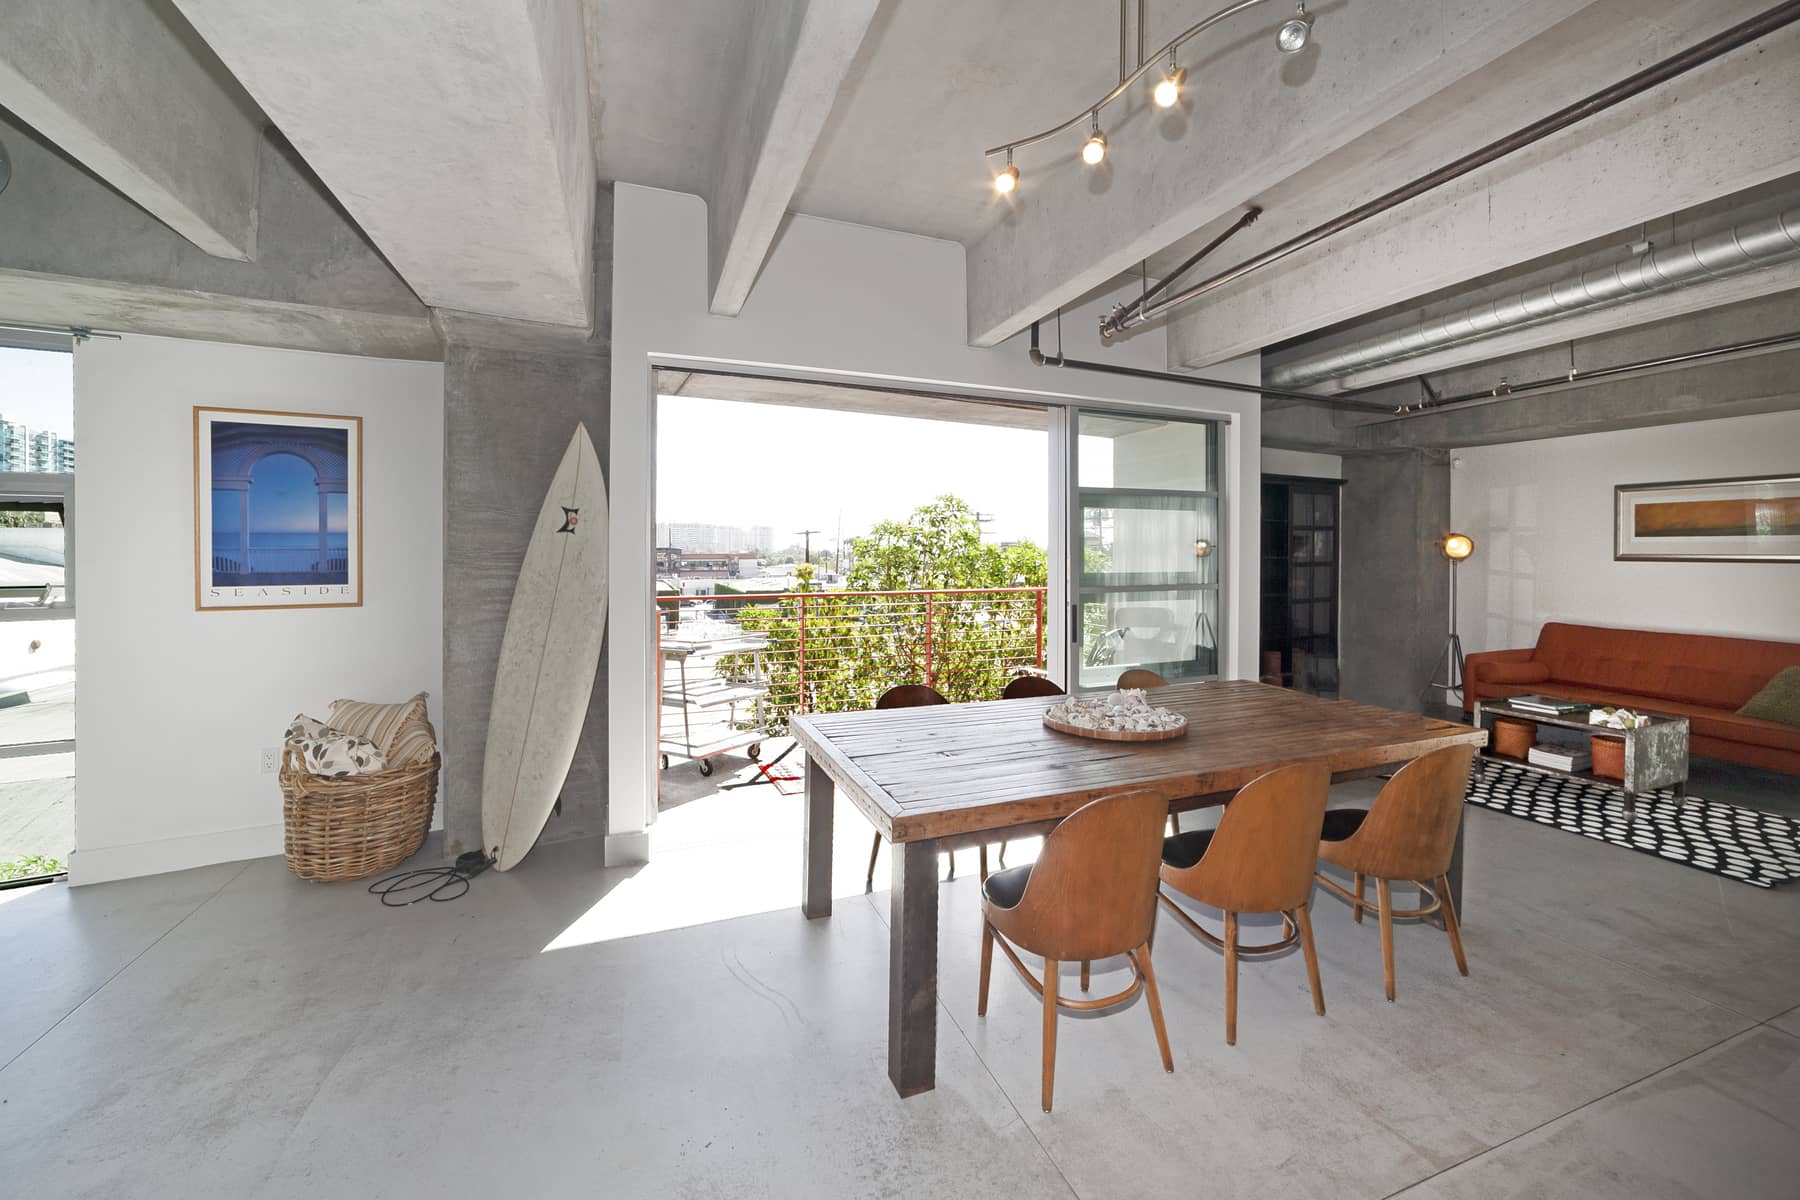 Ever since the 70's when developers began converting factories to spacious urban homes, the deep appeal of loft living has not subsided. In this case, though, it's not a conversion. This is all by design. With polished concrete floors, and 10' concrete ceilings with exposed services, the space has an unmistakable industrial character.